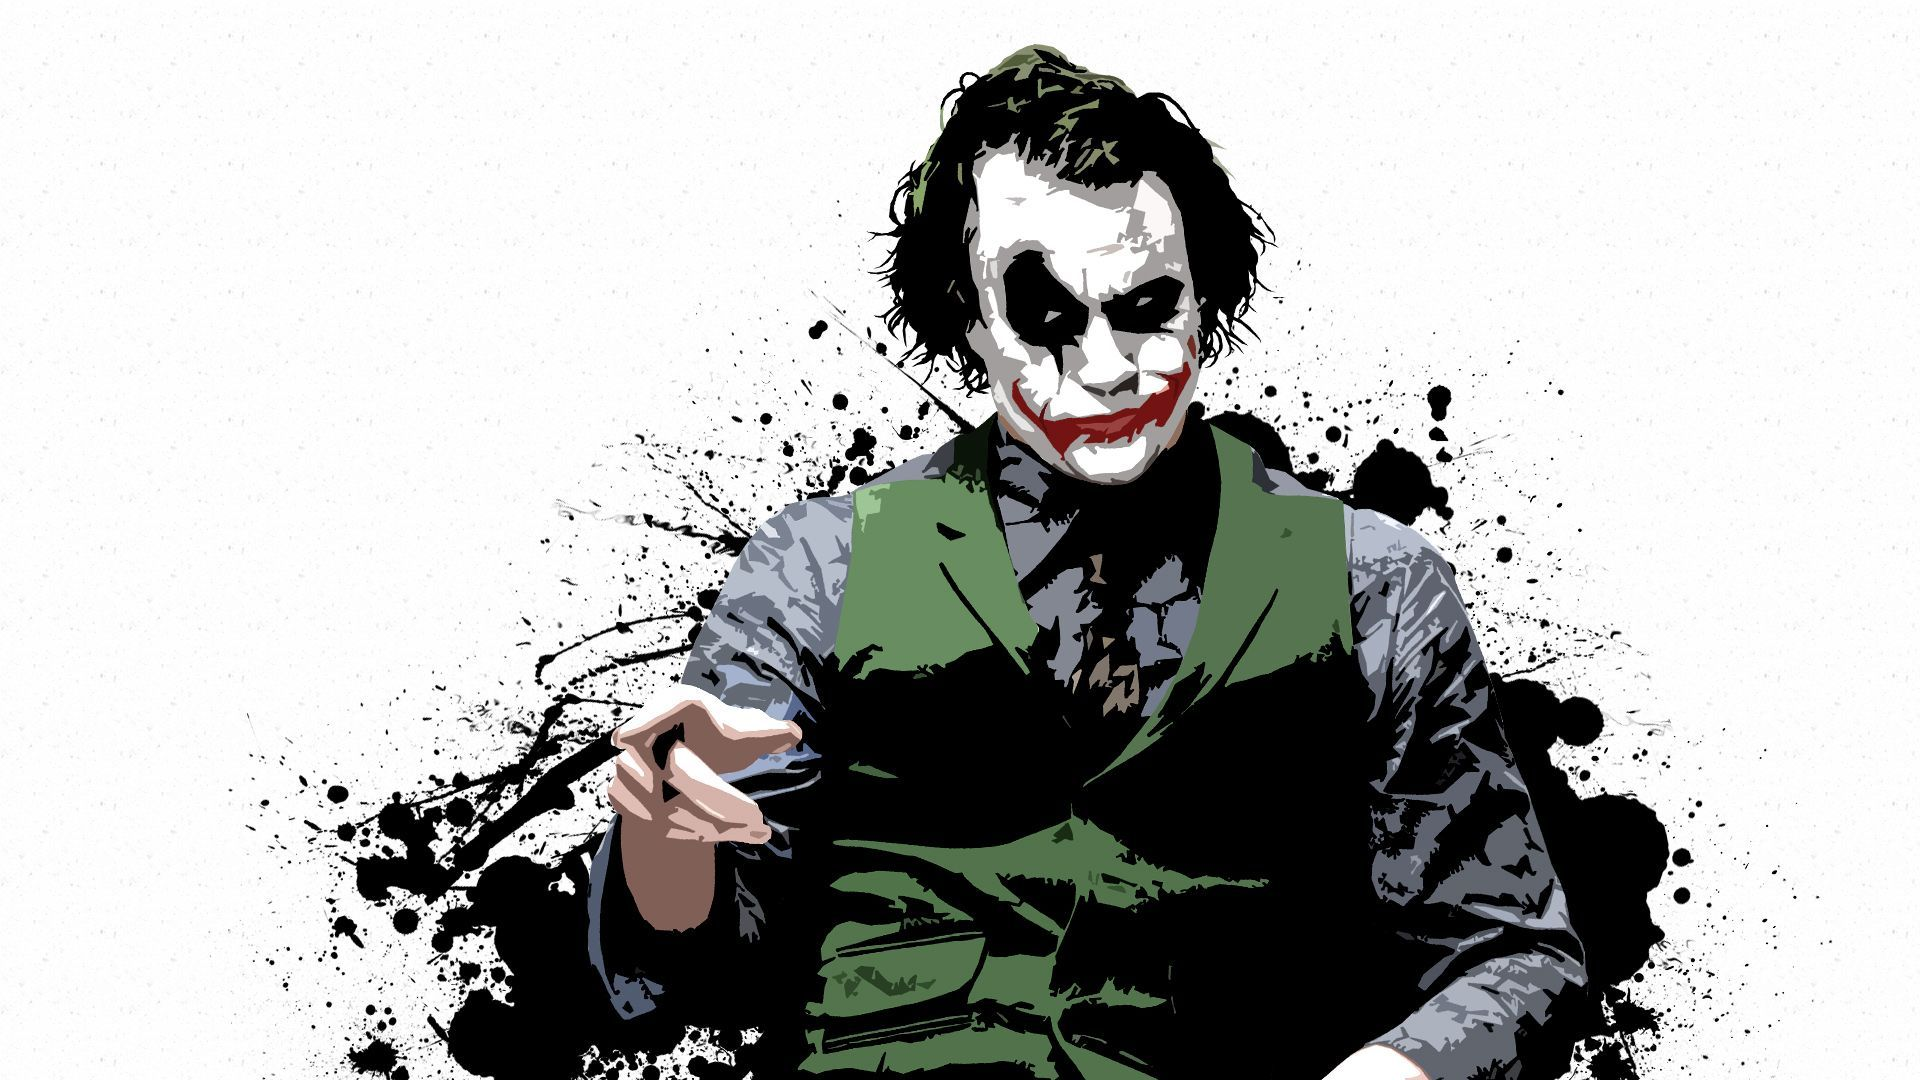 Amazing joker hd wallpapers 1080p About Wallpapers Image with joker